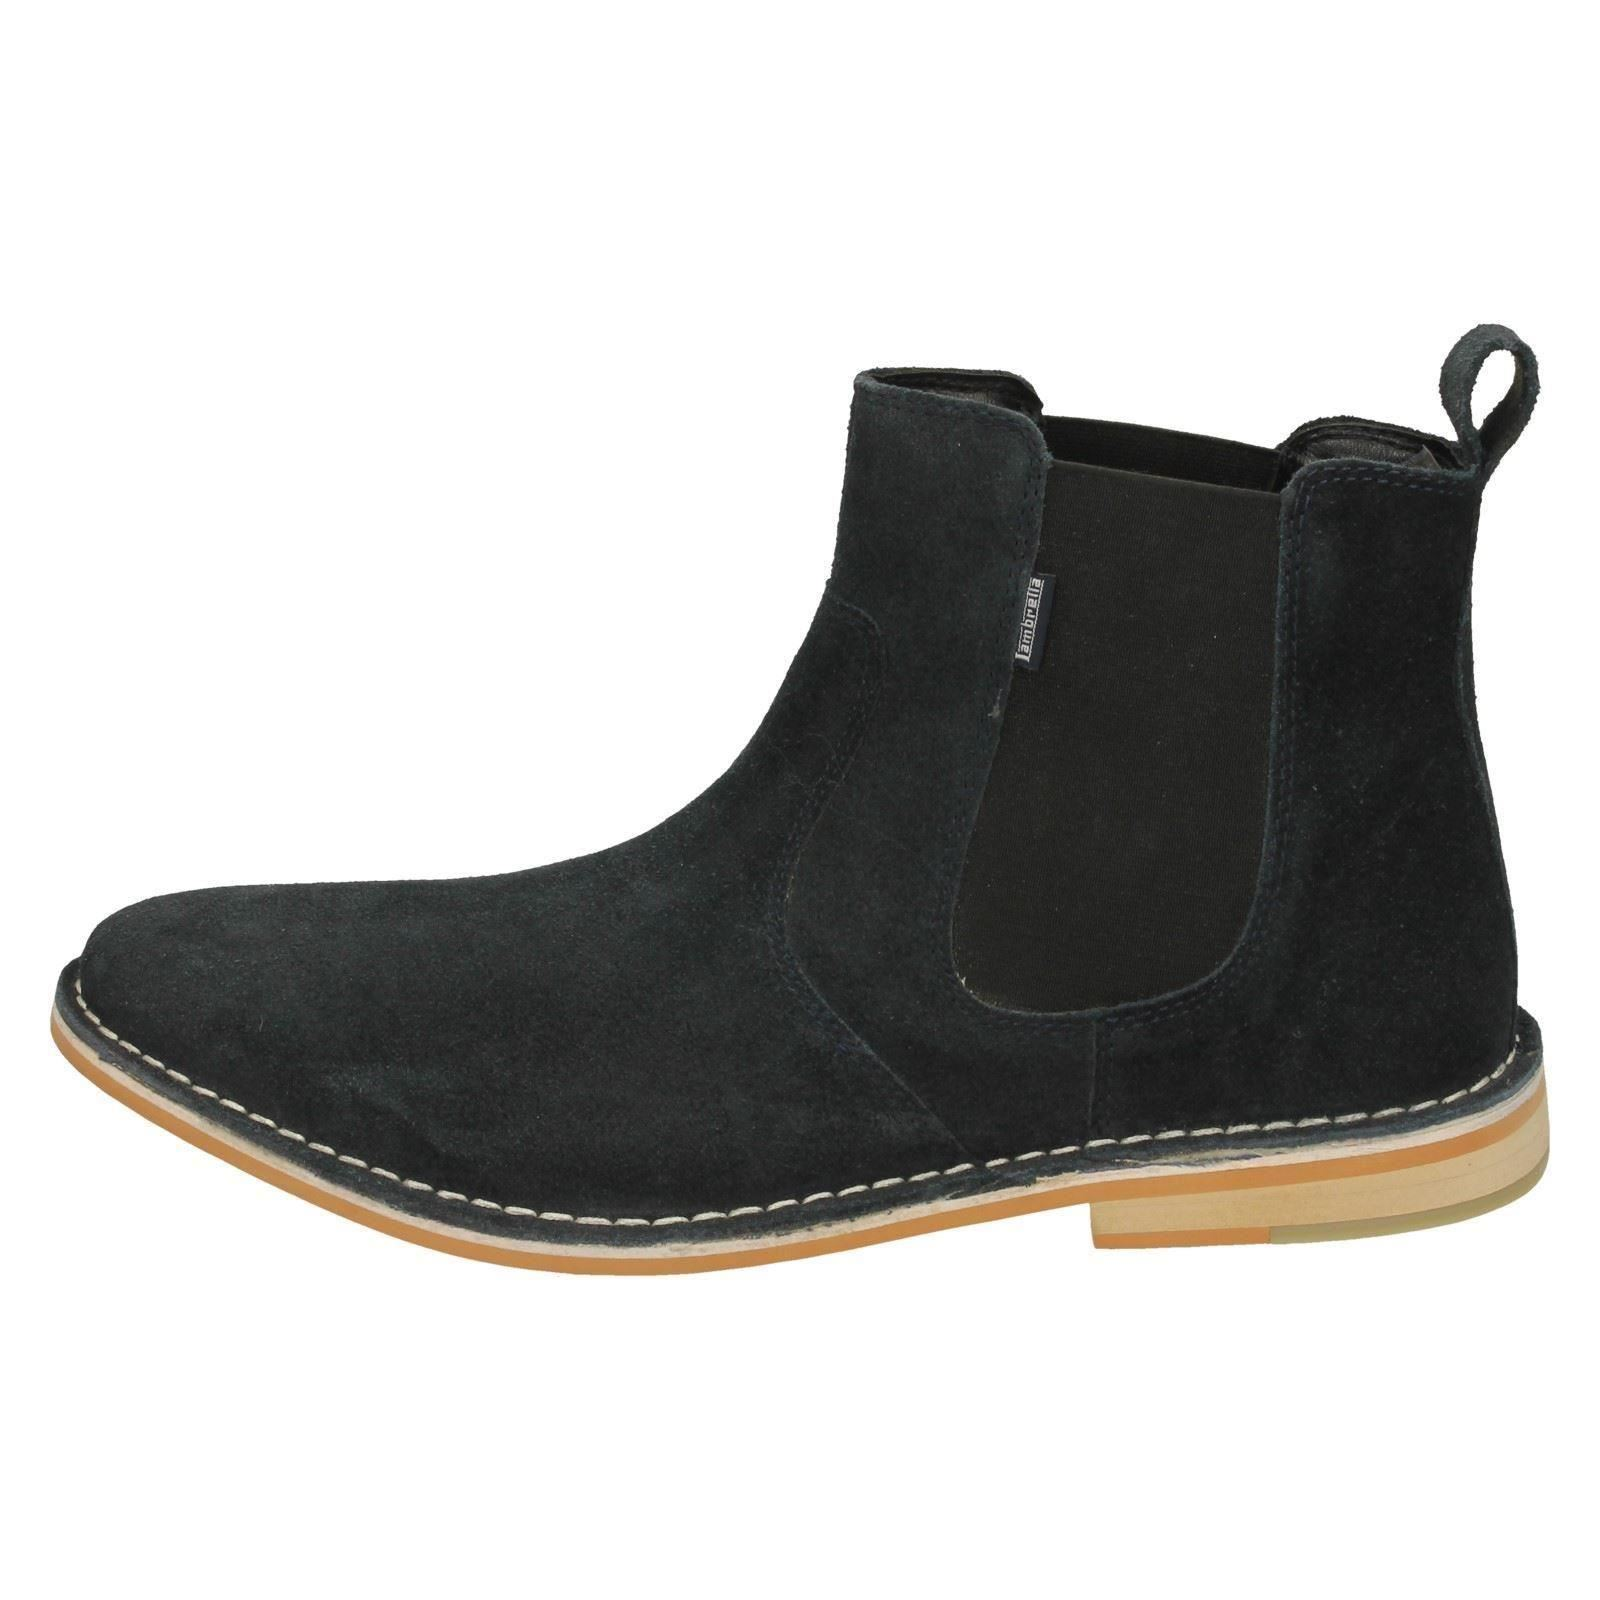 Mens Lambretta Suede Leather Pull On Chelsea Style Ankle Boots Regent